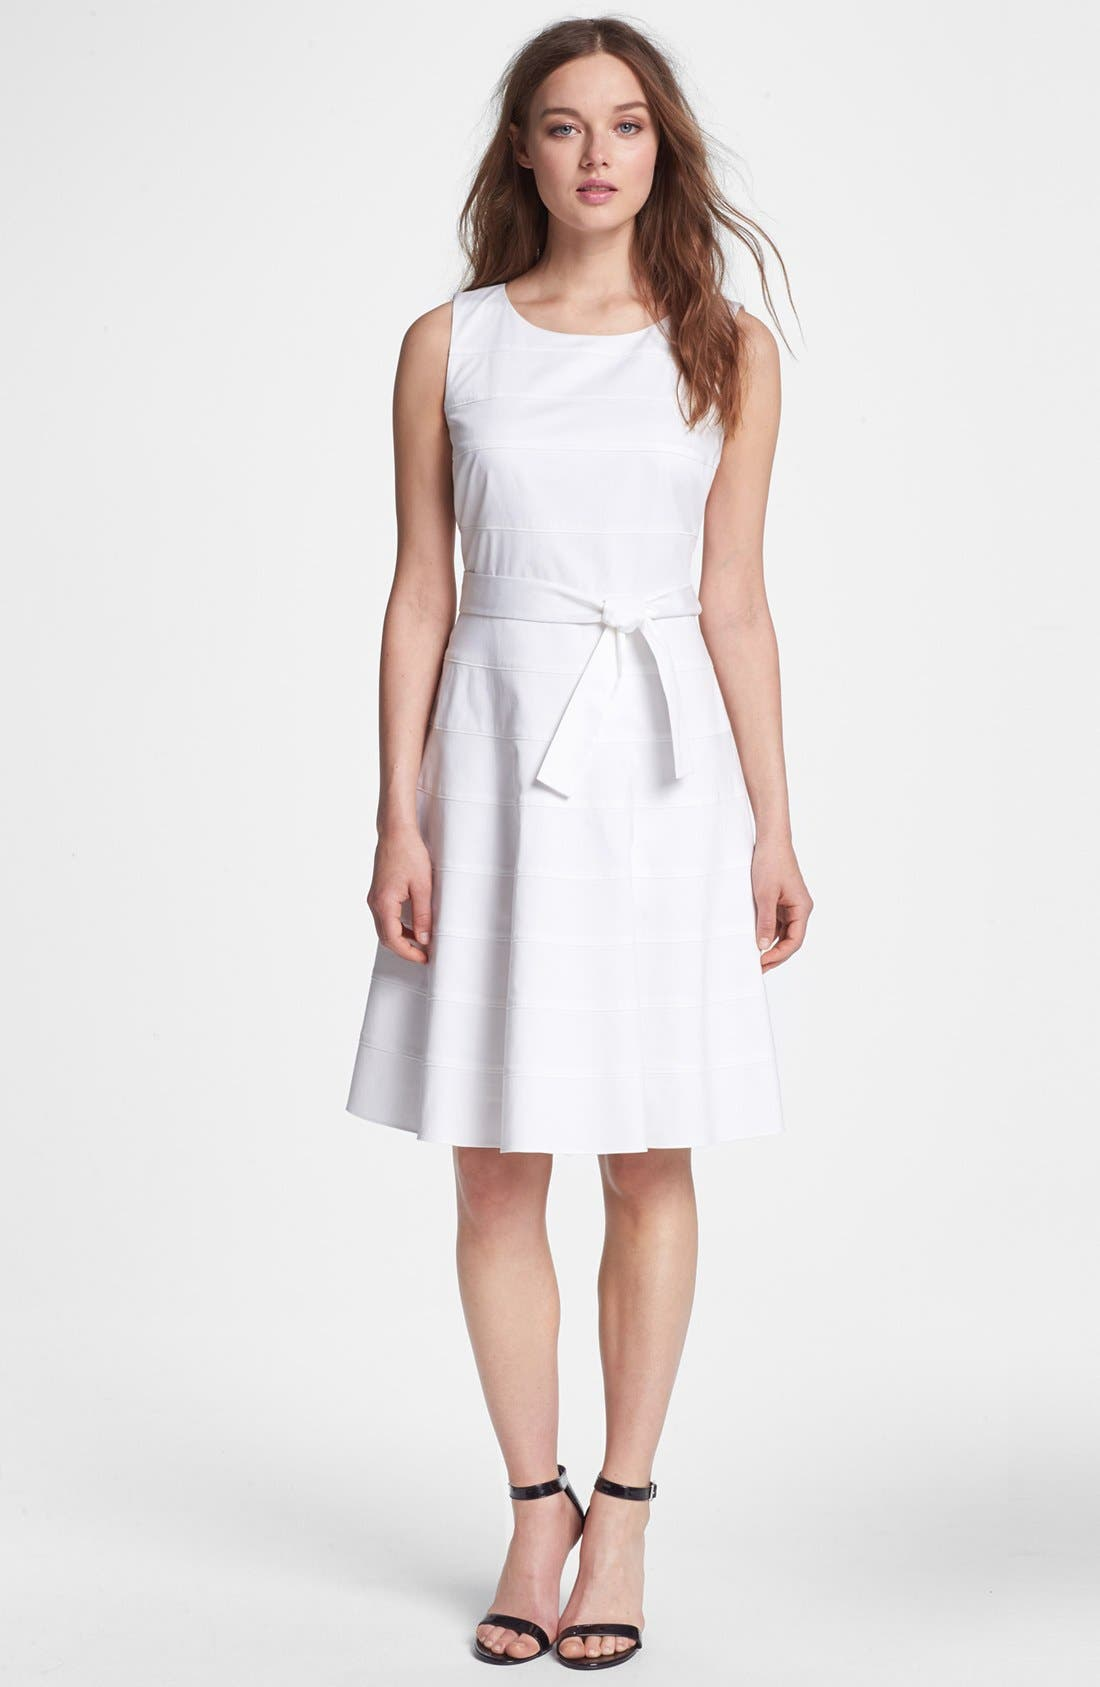 Alternate Image 1 Selected - Calvin Klein Banded Fit & Flare Dress (Petite)